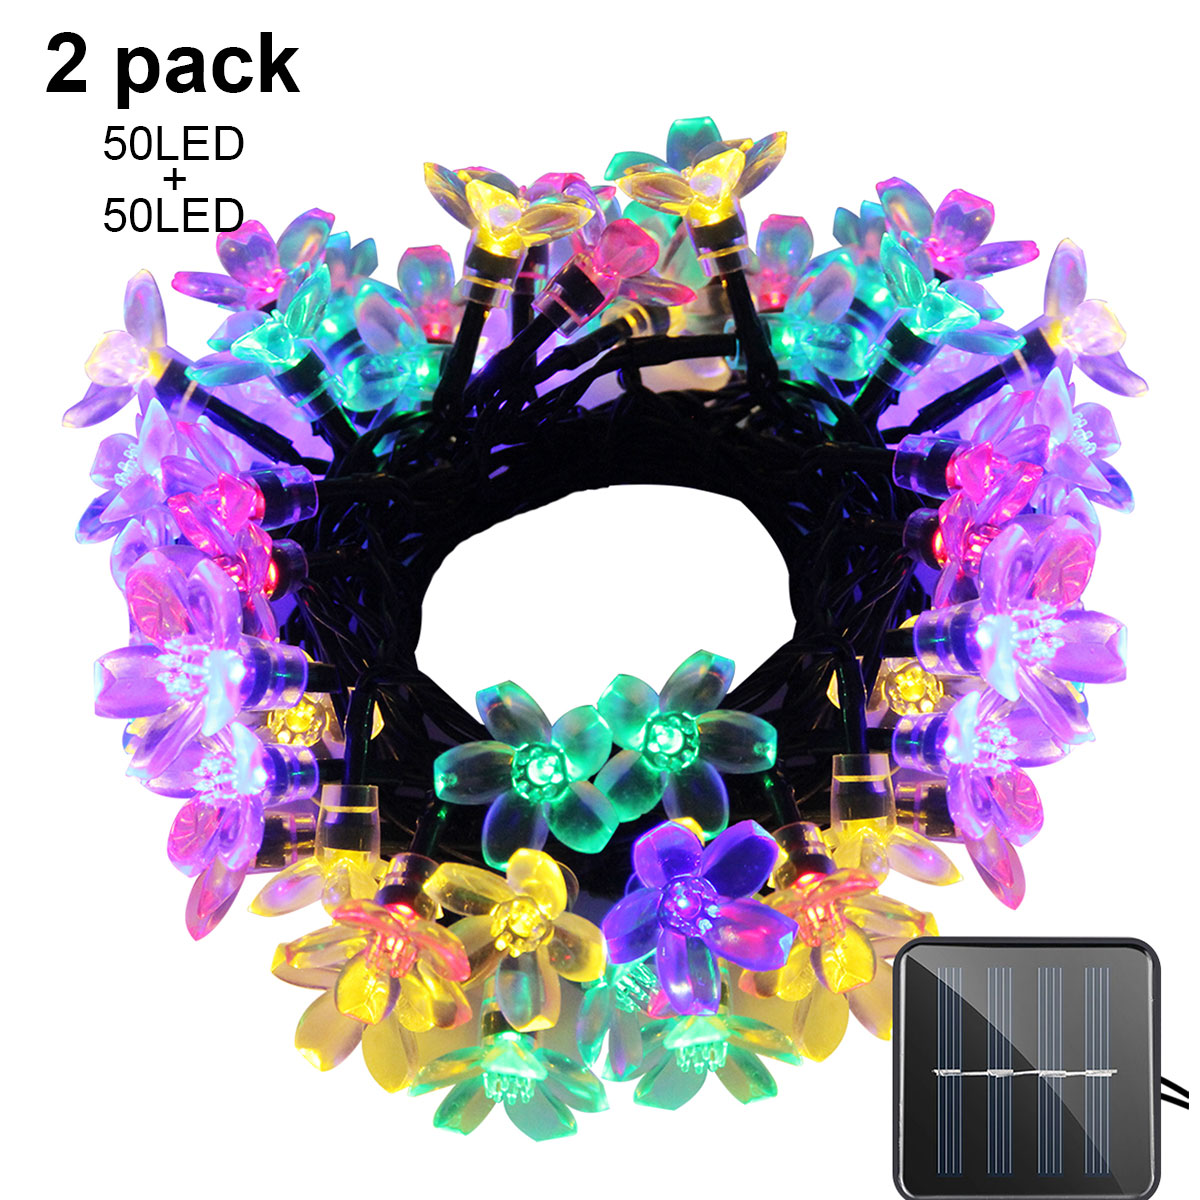 Solar String Lights 21ft 50 LED Fairy Flower Blossom Decorative Light Indoor Garden Patio Party Xmas Tree Decorations 2-PACK